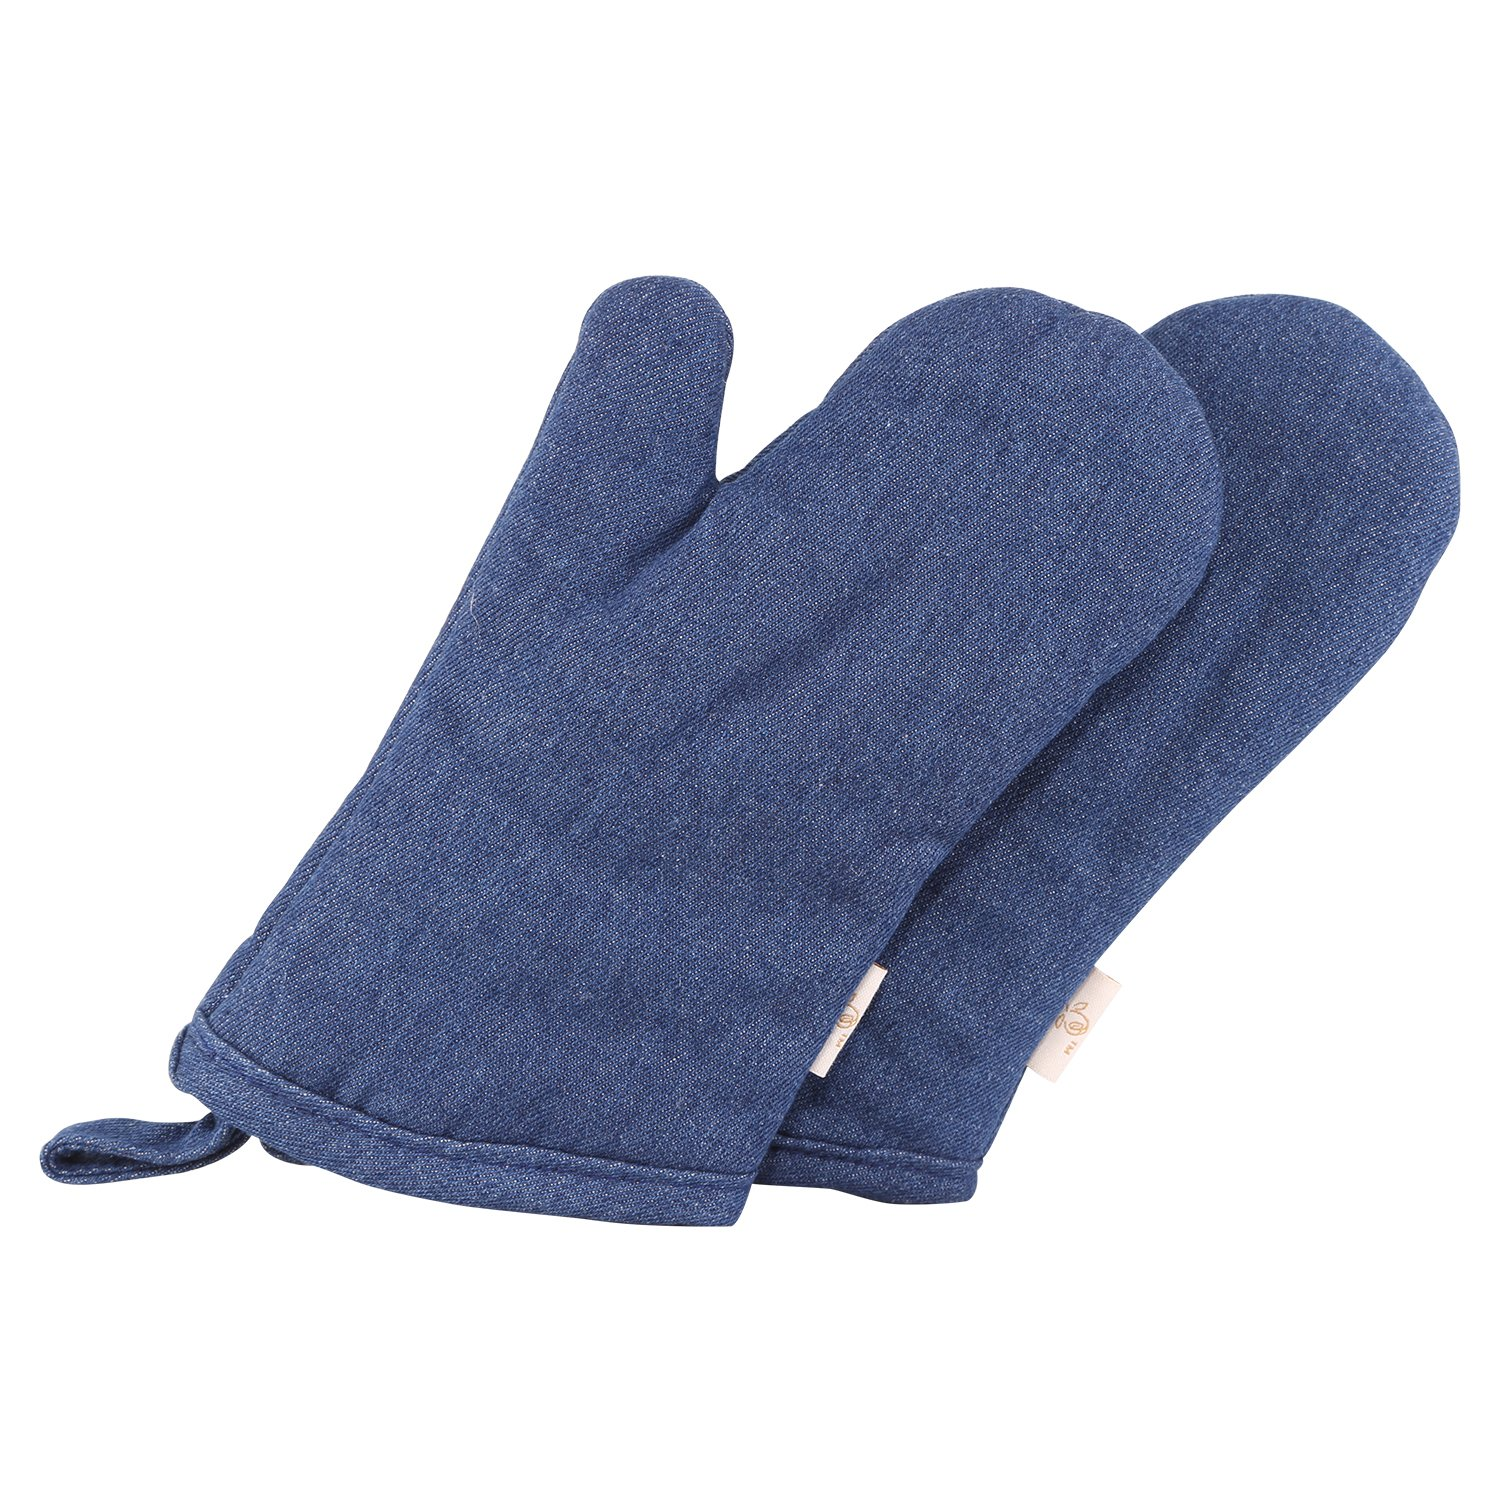 NEOVIVA Cotton Denim Quilting Kitchen Oven Gloves for Kids, Set of 2, Solid Indigo Blue